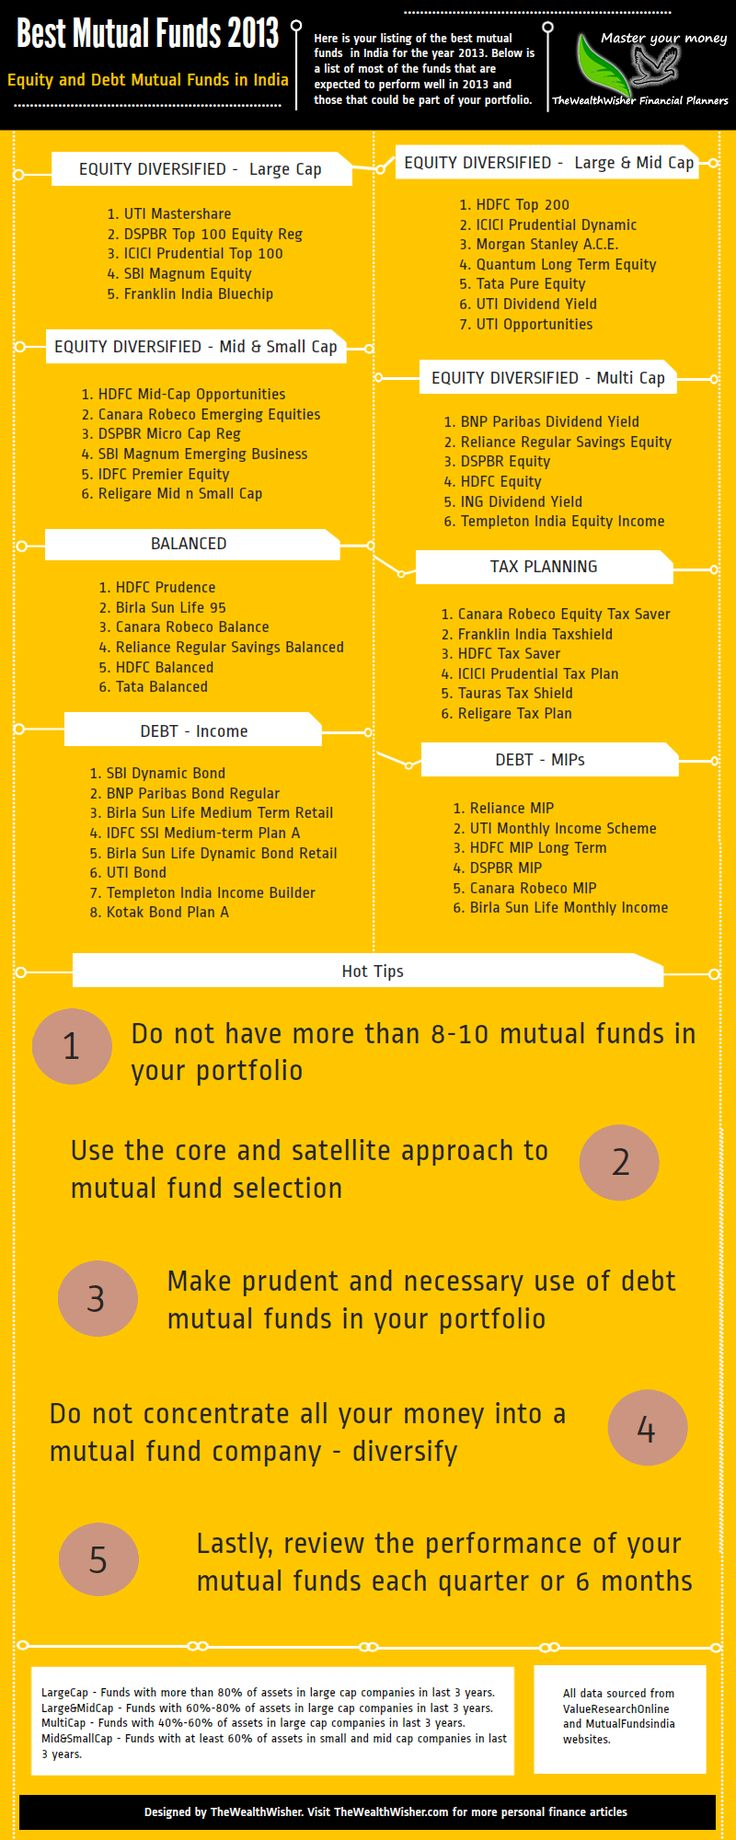 What were the Best Mutual Funds to invest in India last year?